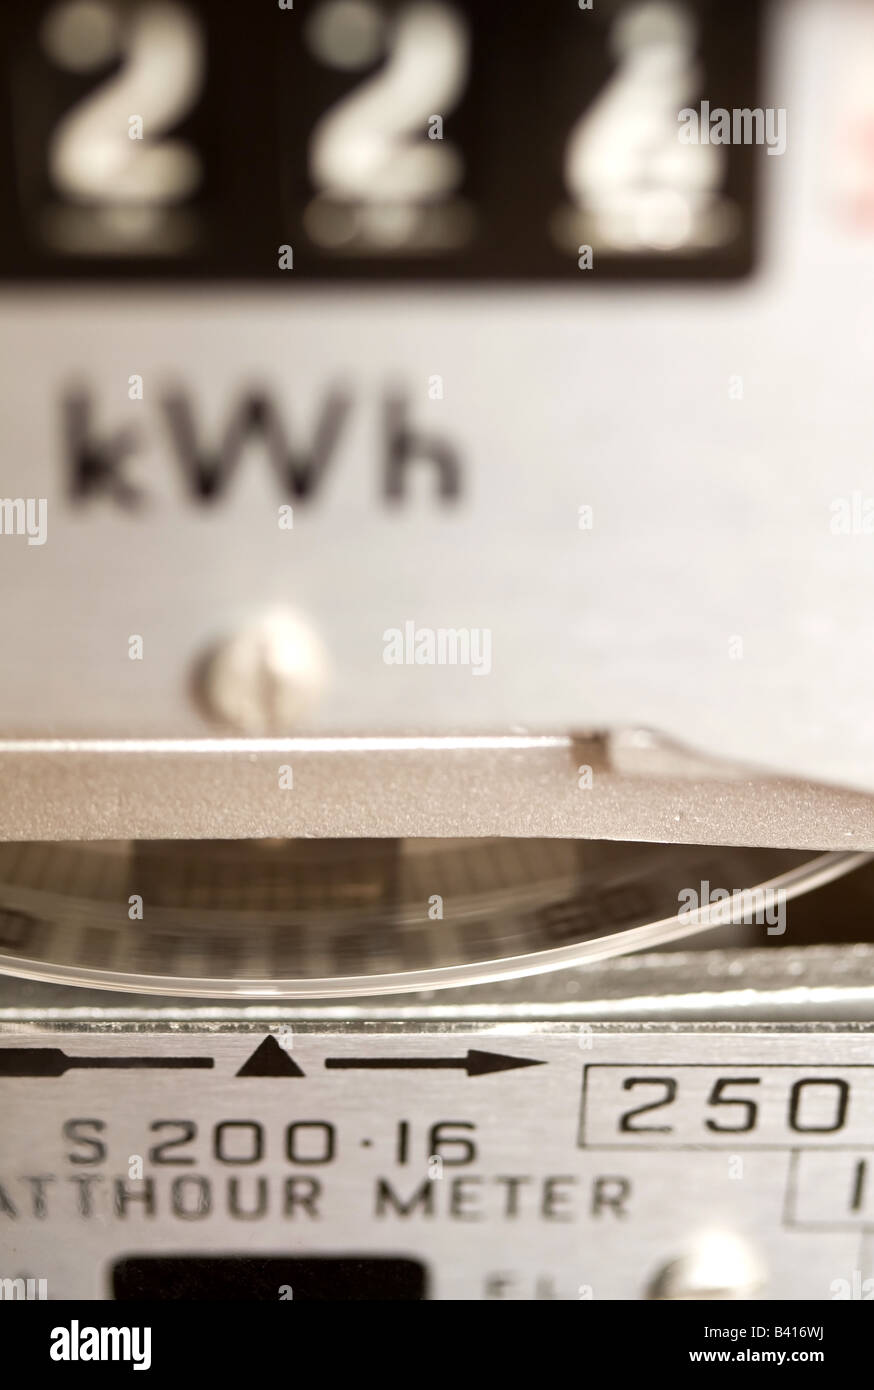 Close up photo of an electricity meter in operation. - Stock Image